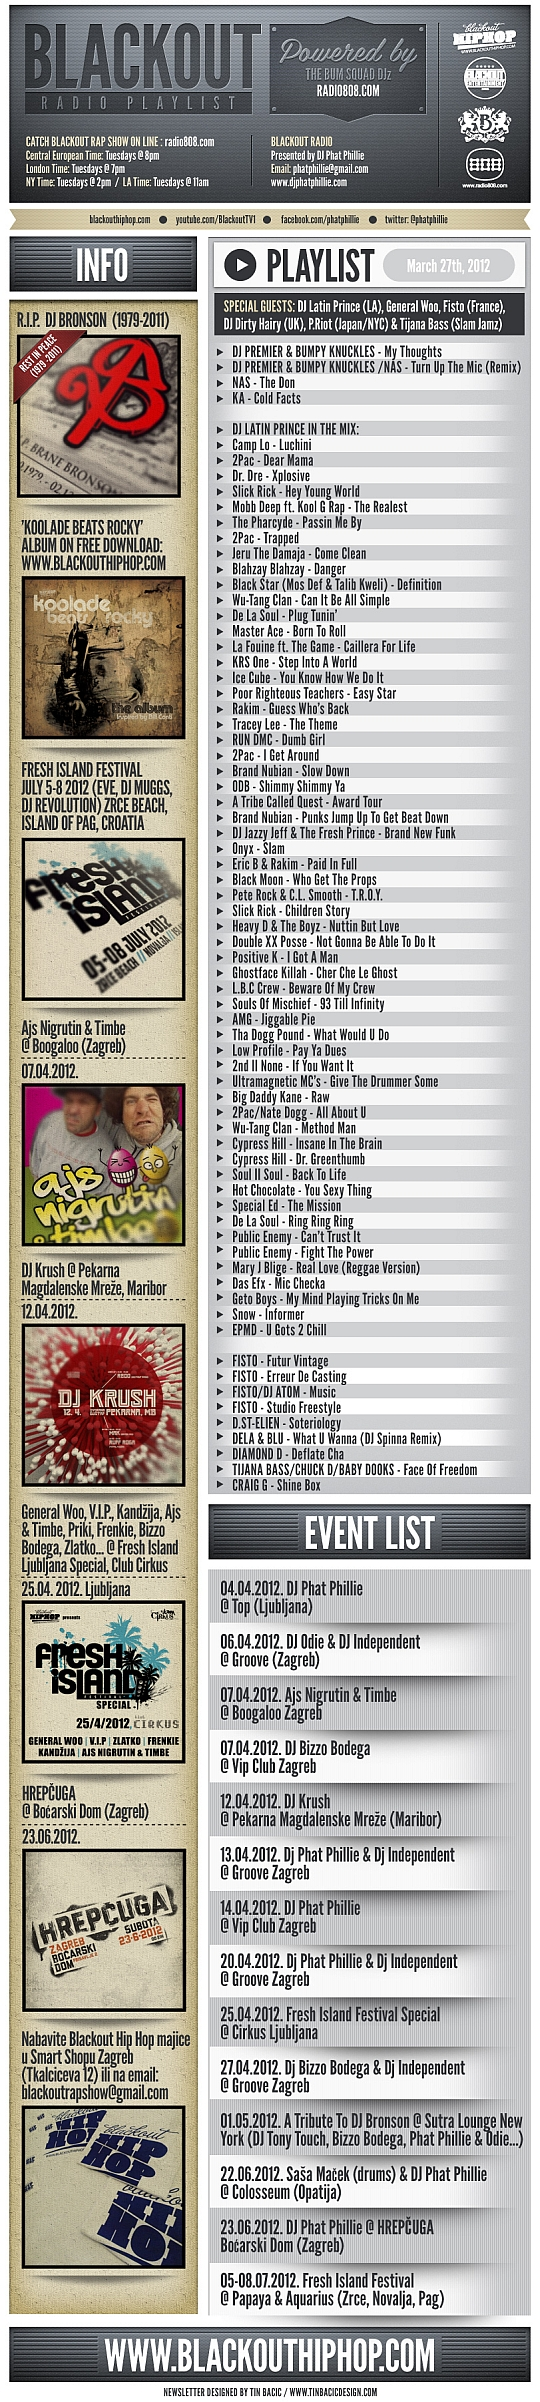 PLAYLIST 27.3.2012 Blackout Radio Playlist & DL Links (Mar 27th, 2012)